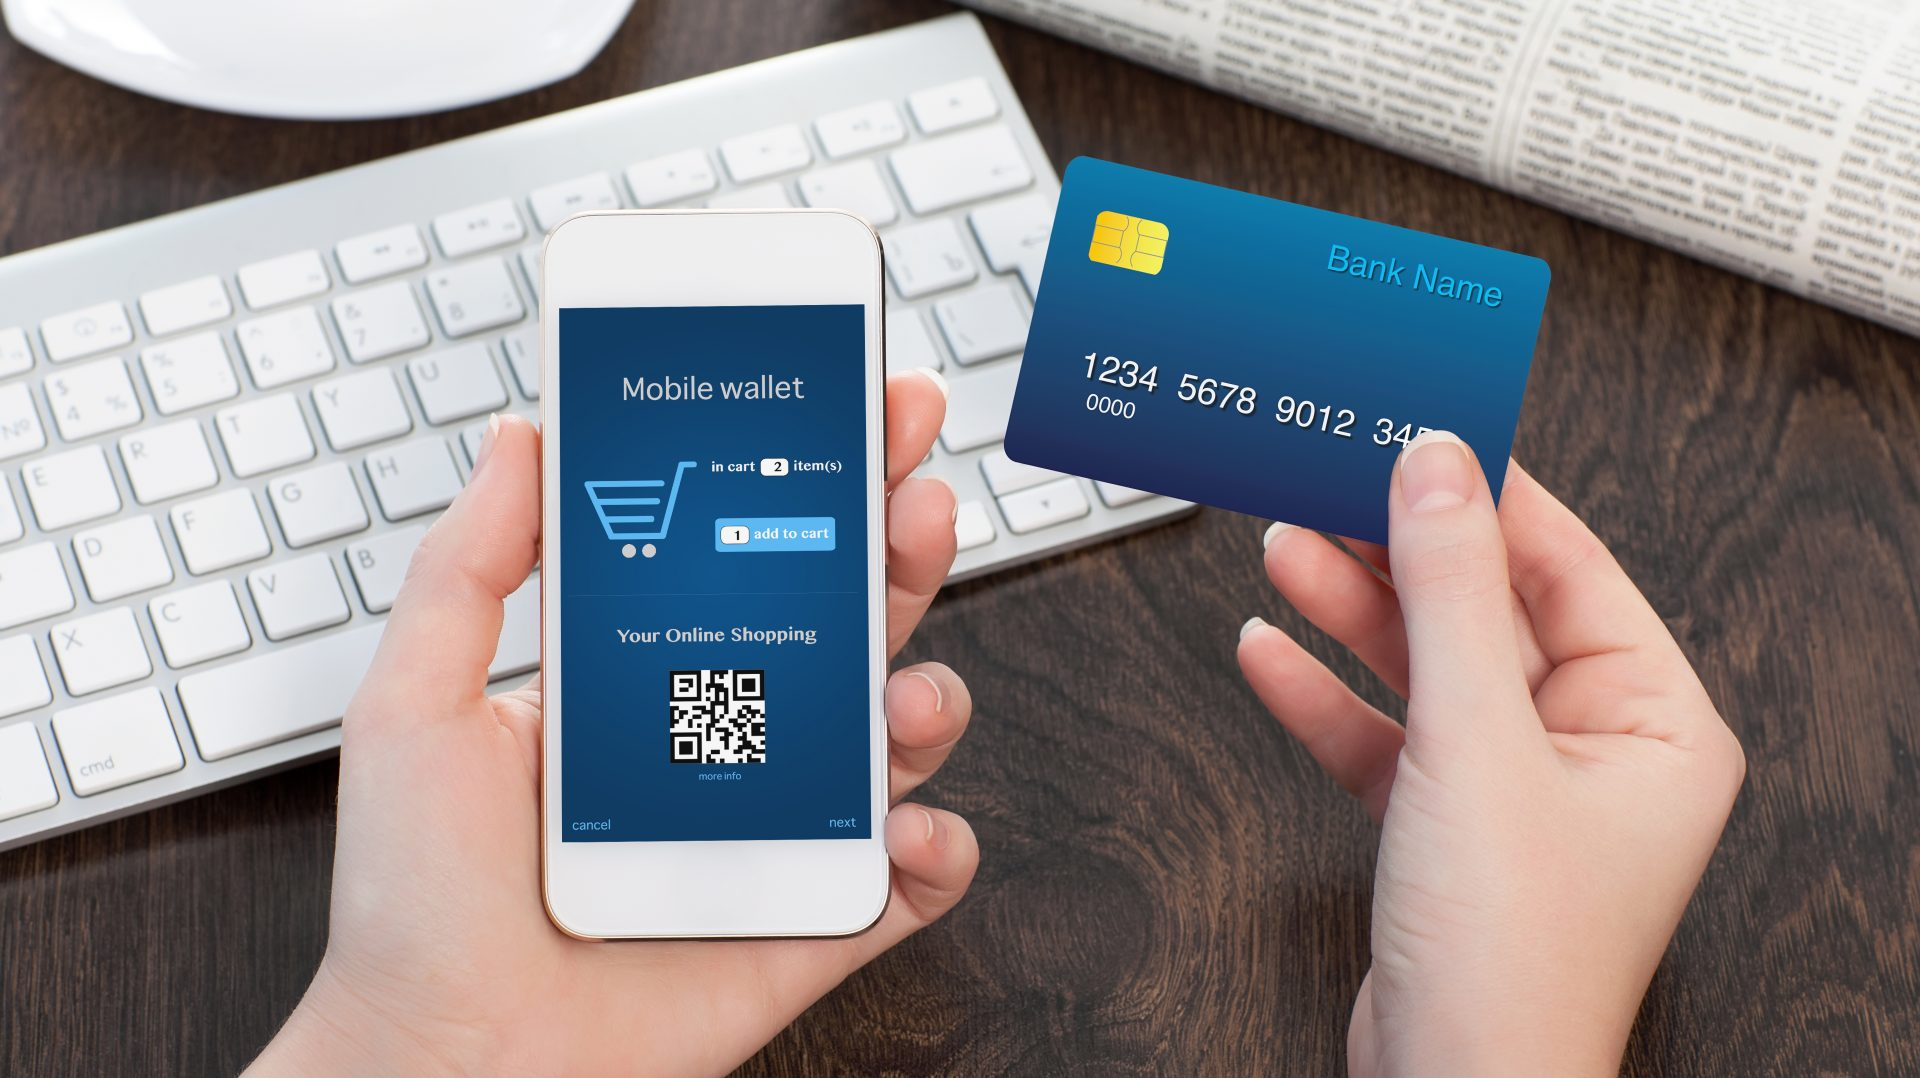 Make Credit Card Payment Another Credit Card